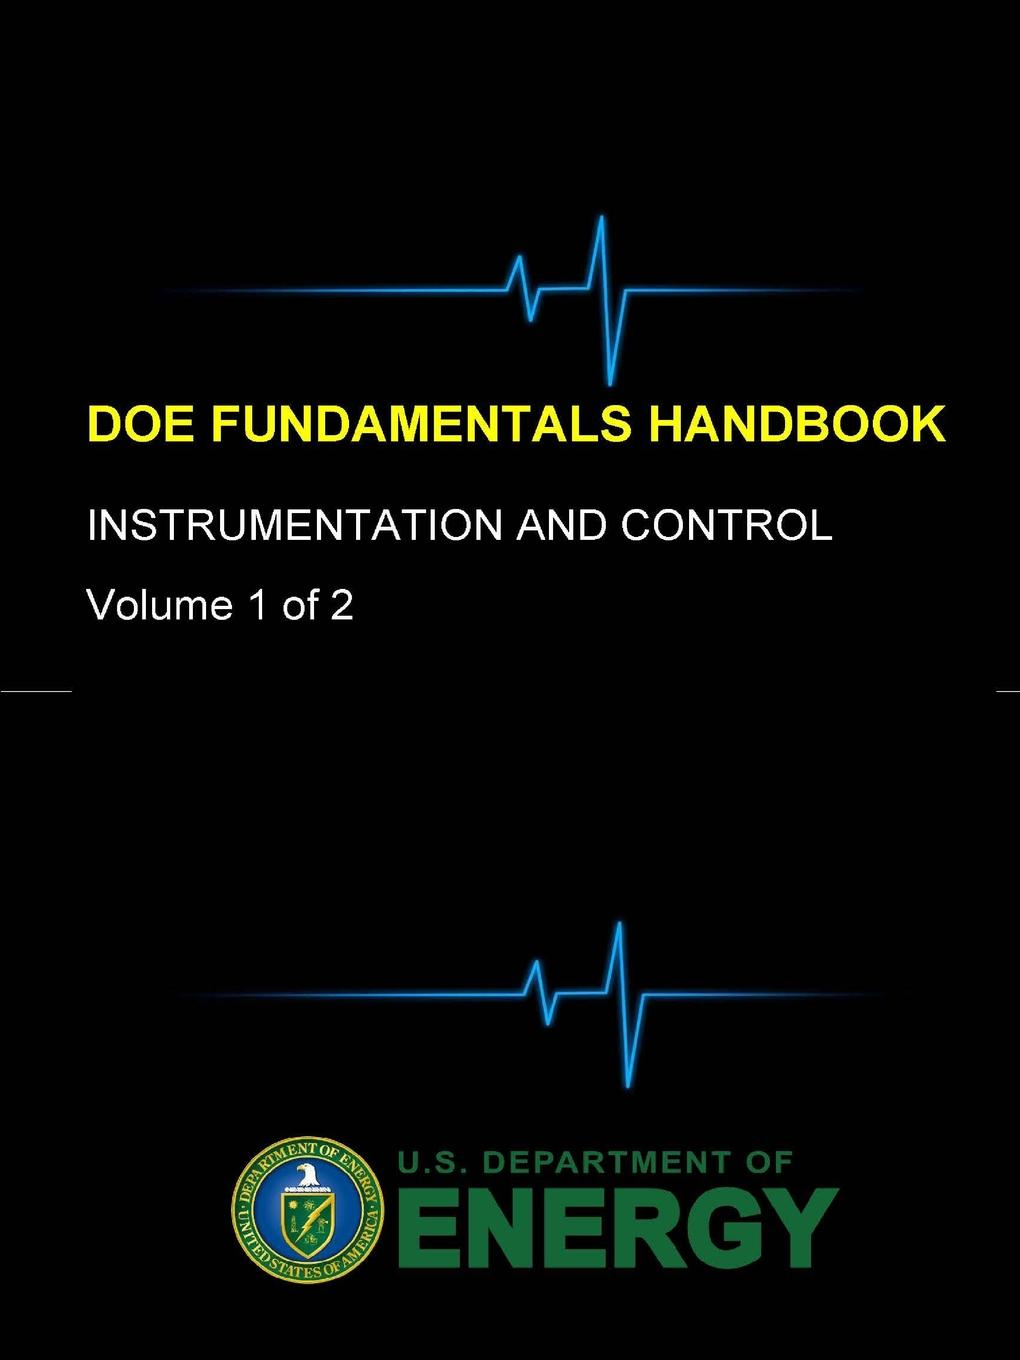 U.S. Department of Energy DOE Fundamentals Handbook - Instrumentation and Control (Volume 1 of 2) myer kutz mechanical engineers handbook volume 2 design instrumentation and controls